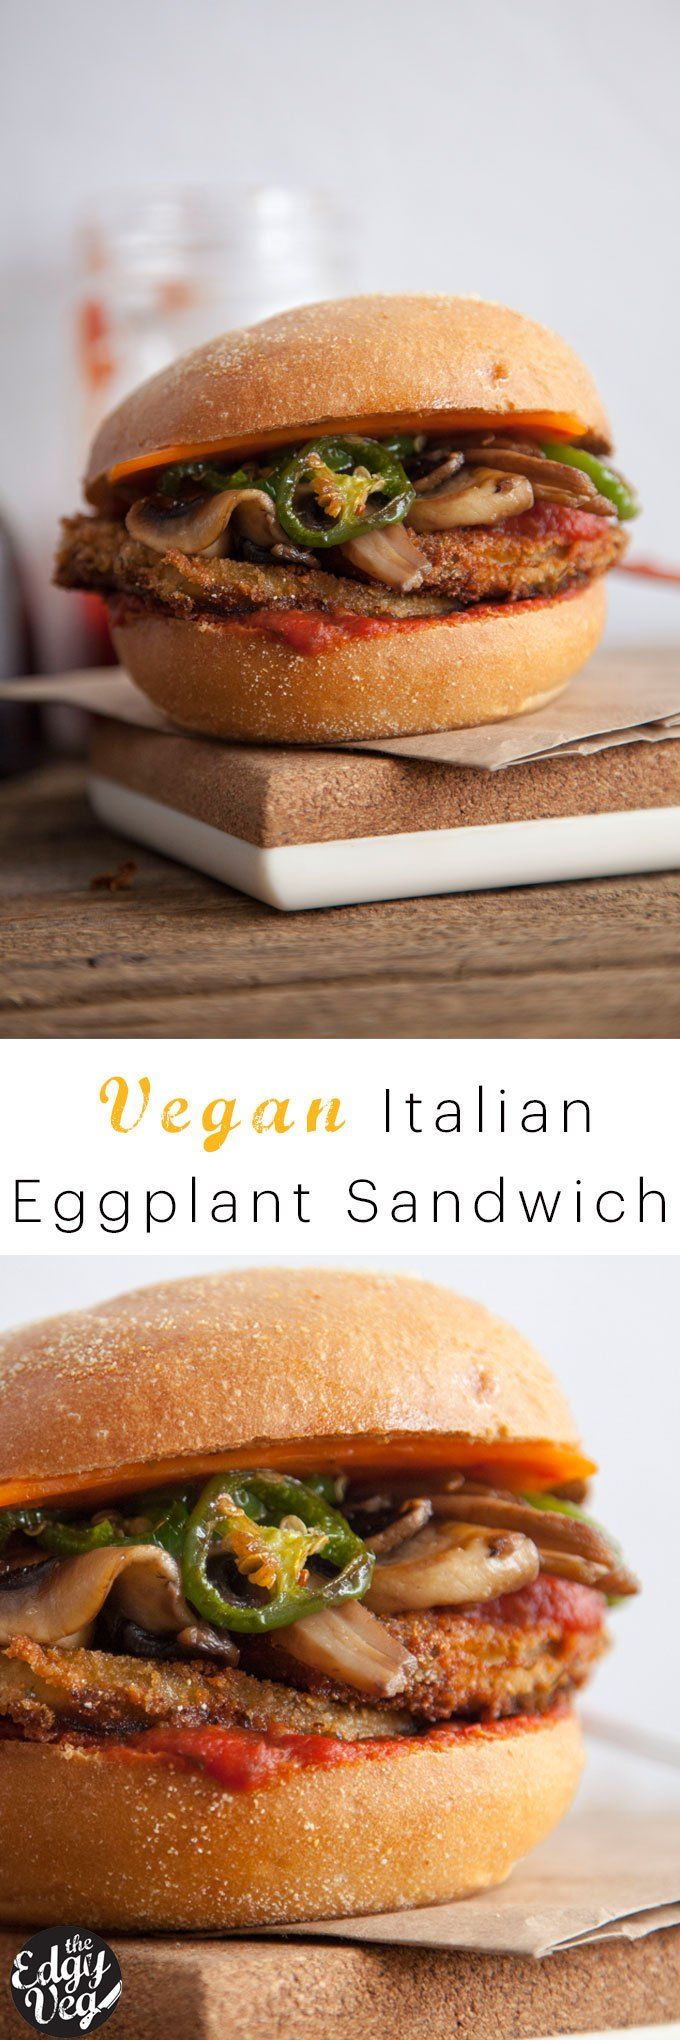 Italian Eggplant Sandwich: Vegan Recipe  A mouth watering sandwich recipe that's a twist on the classic Italian Veal Sandwich, substituting eggplant for veal turning it into a true vegan delight that many would also say is an even better tasting Italian sandwich than the original.